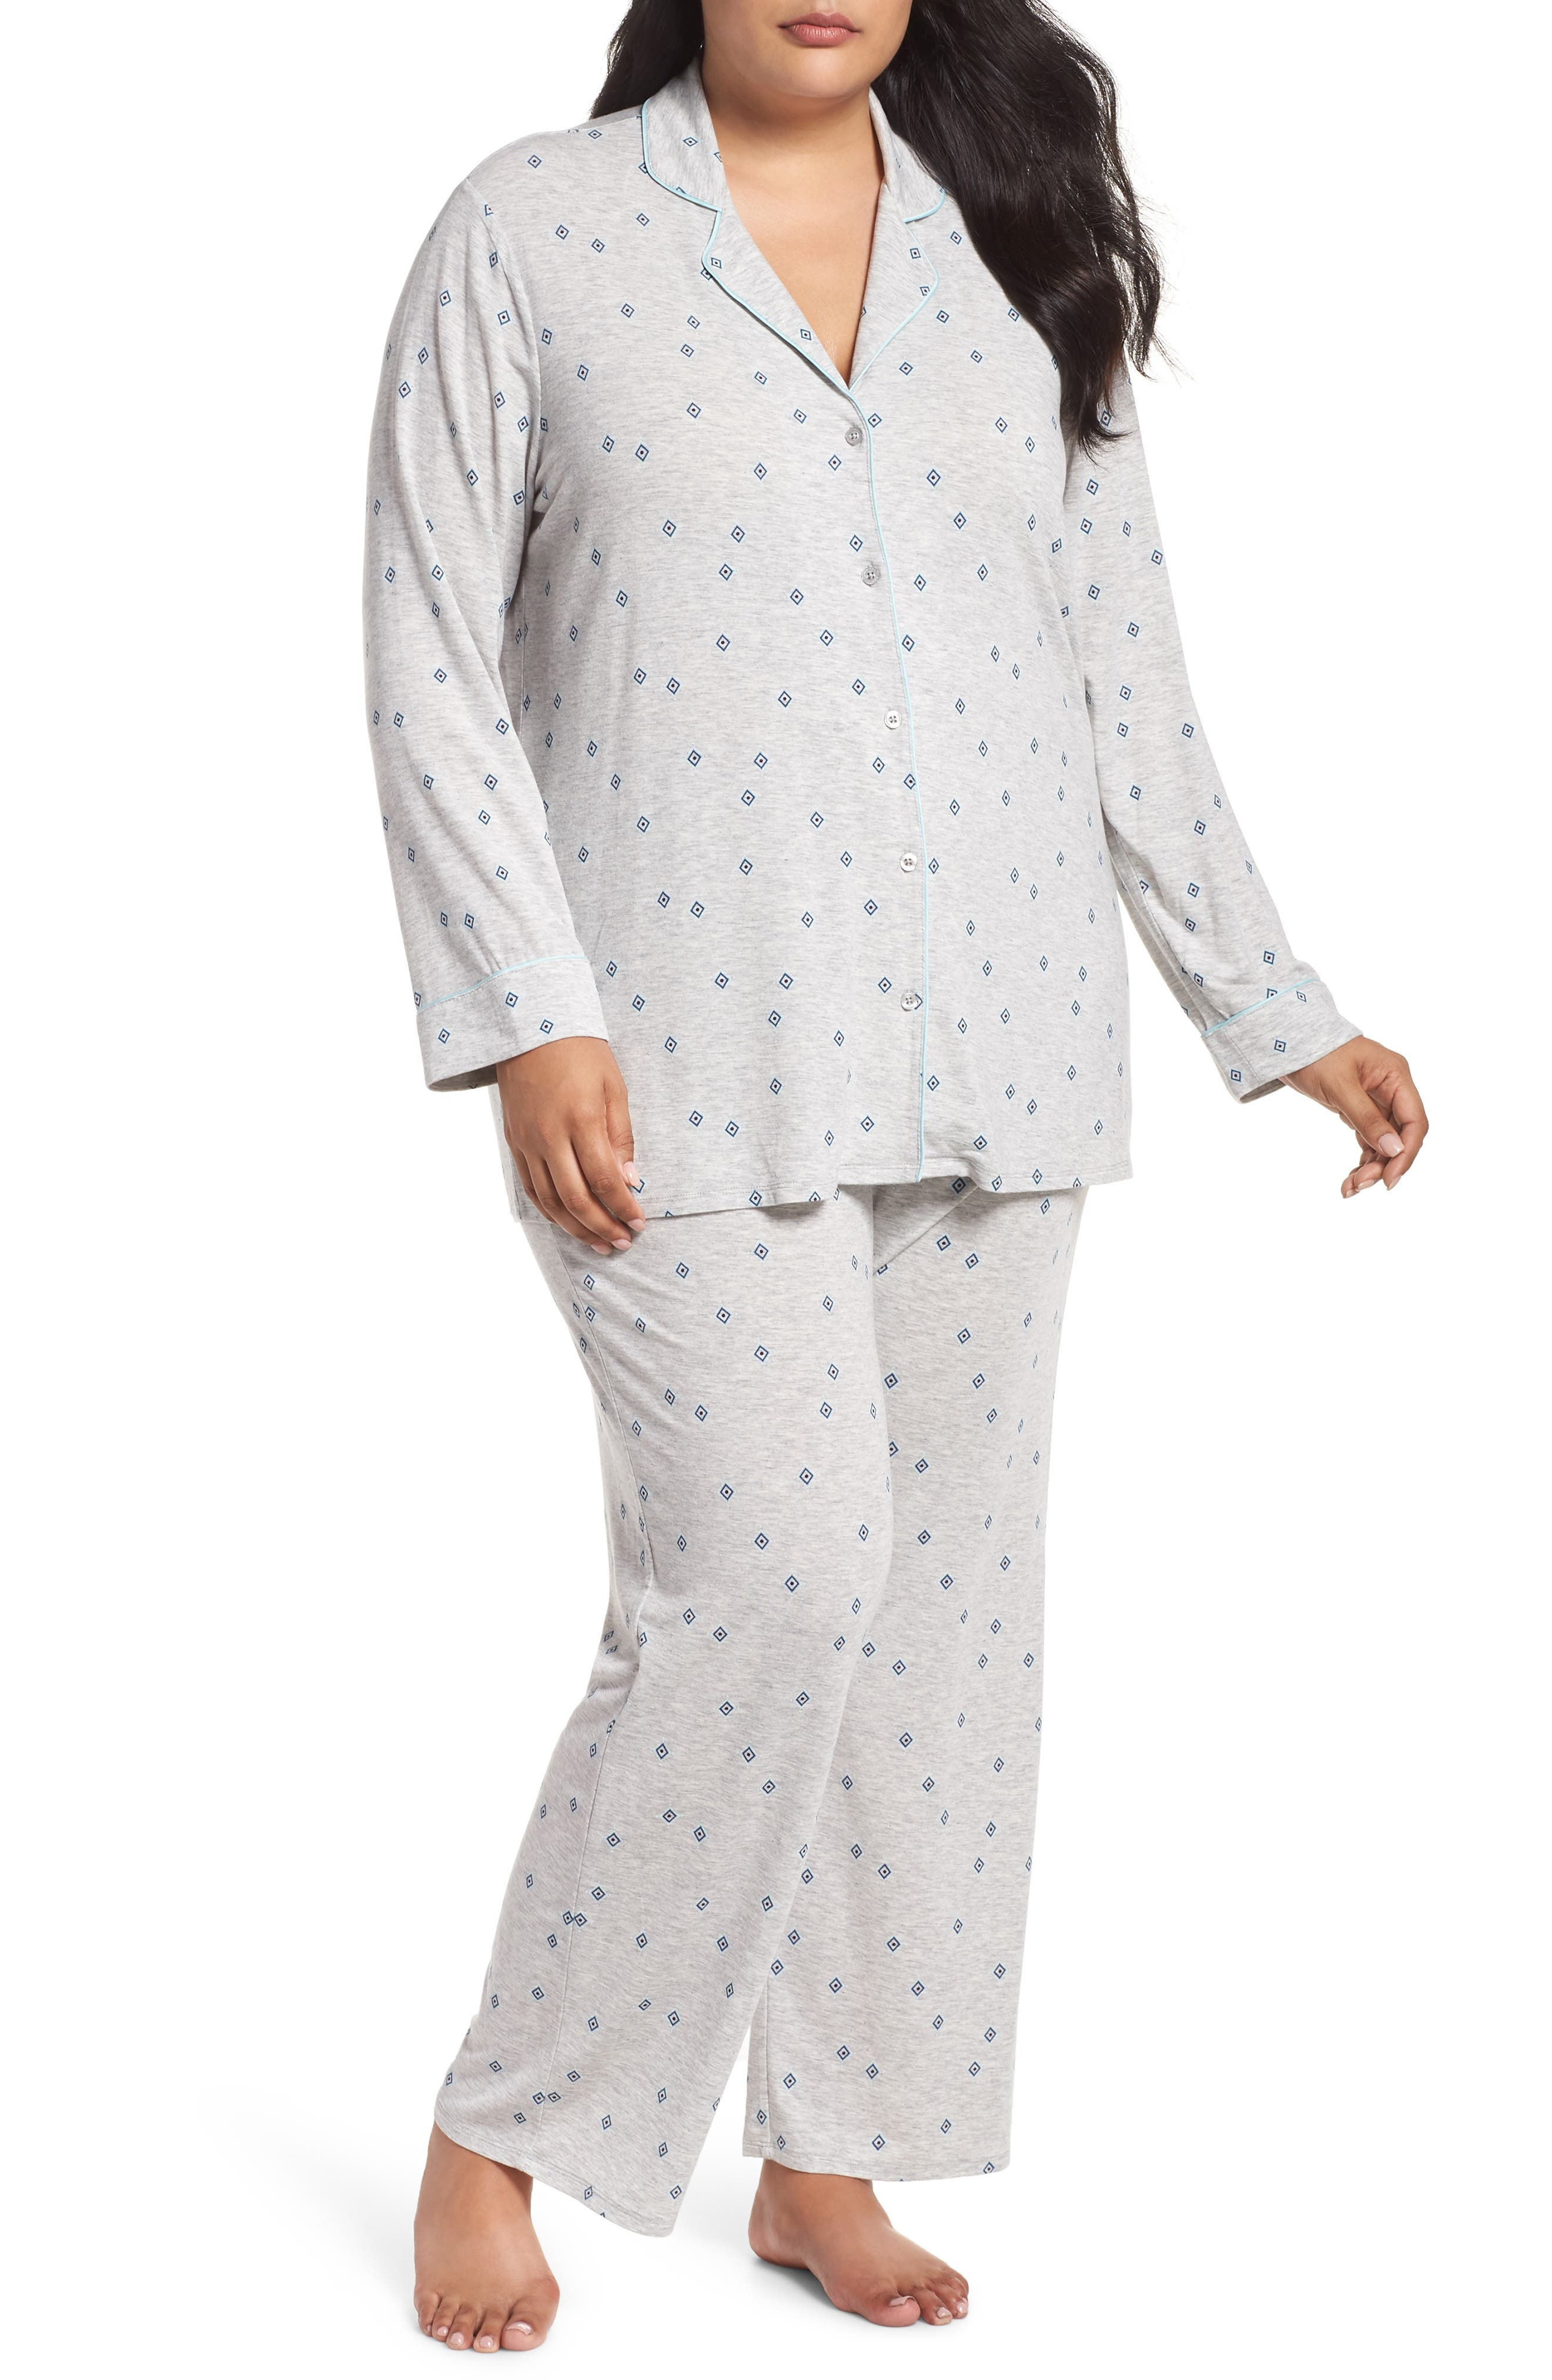 'Moonlight' Pajamas,                             Main thumbnail 1, color,                             GREY PEARL HTR FLIRTY FOULARD